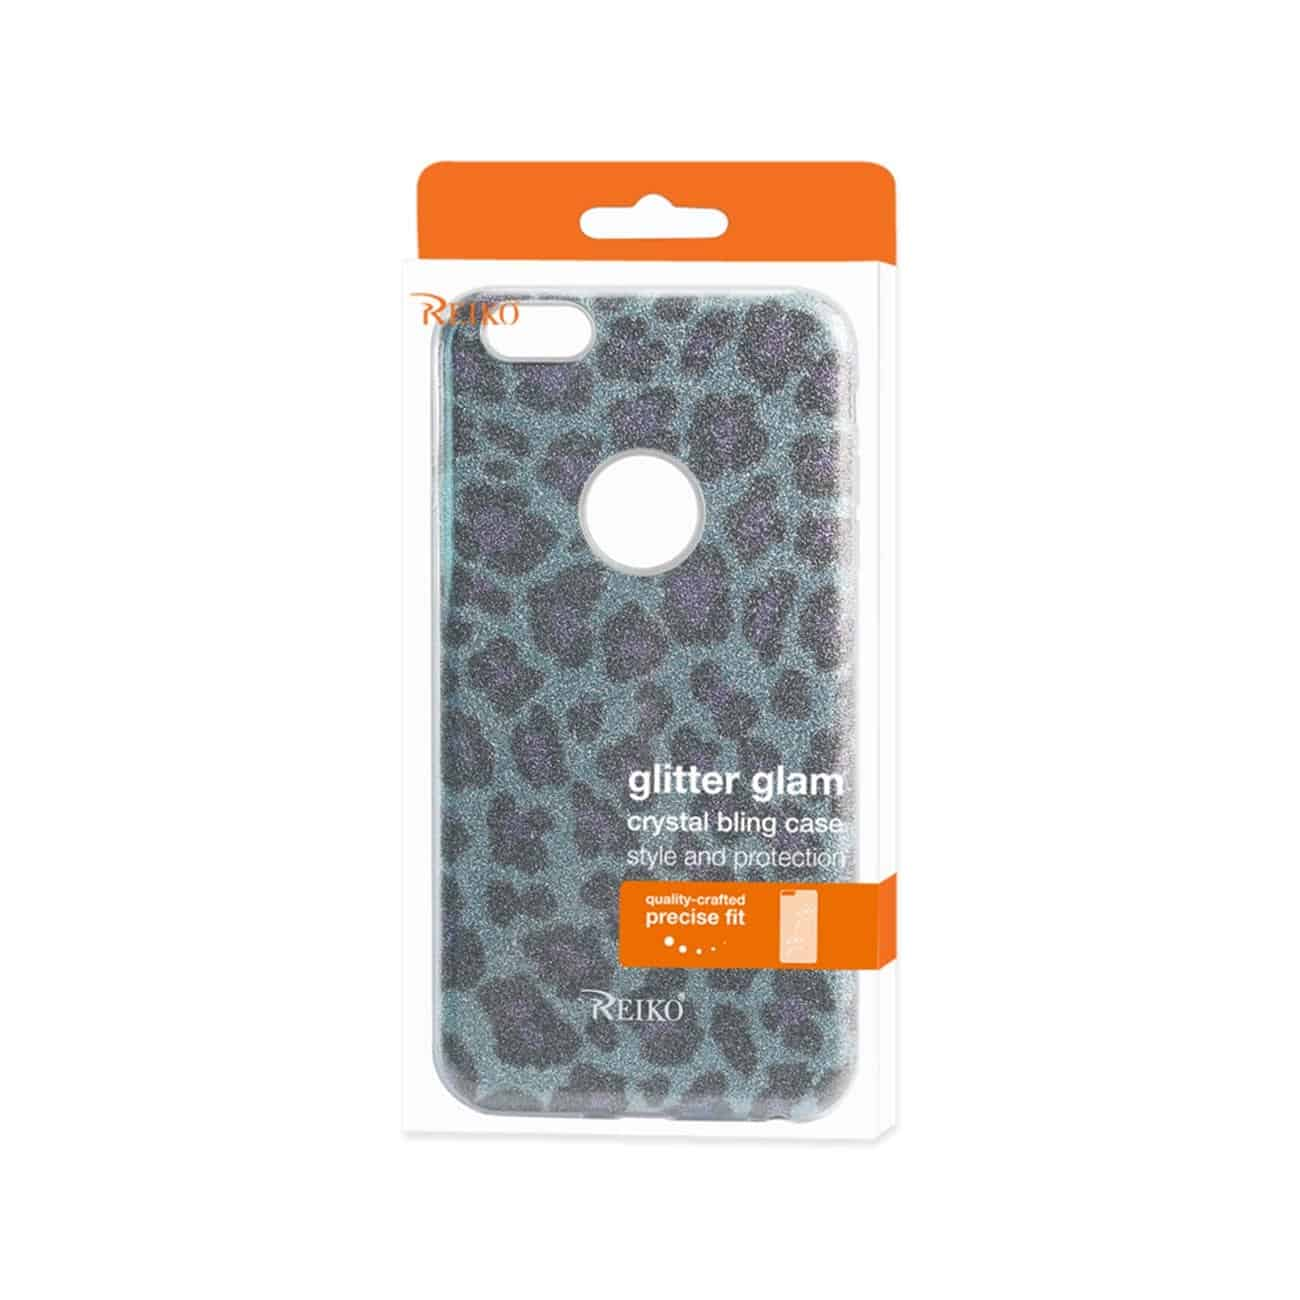 IPHONE 6 PLUS/ 6S PLUS SHINE GLITTER SHIMMER LEOPARD HYBRID CASE IN BLUE